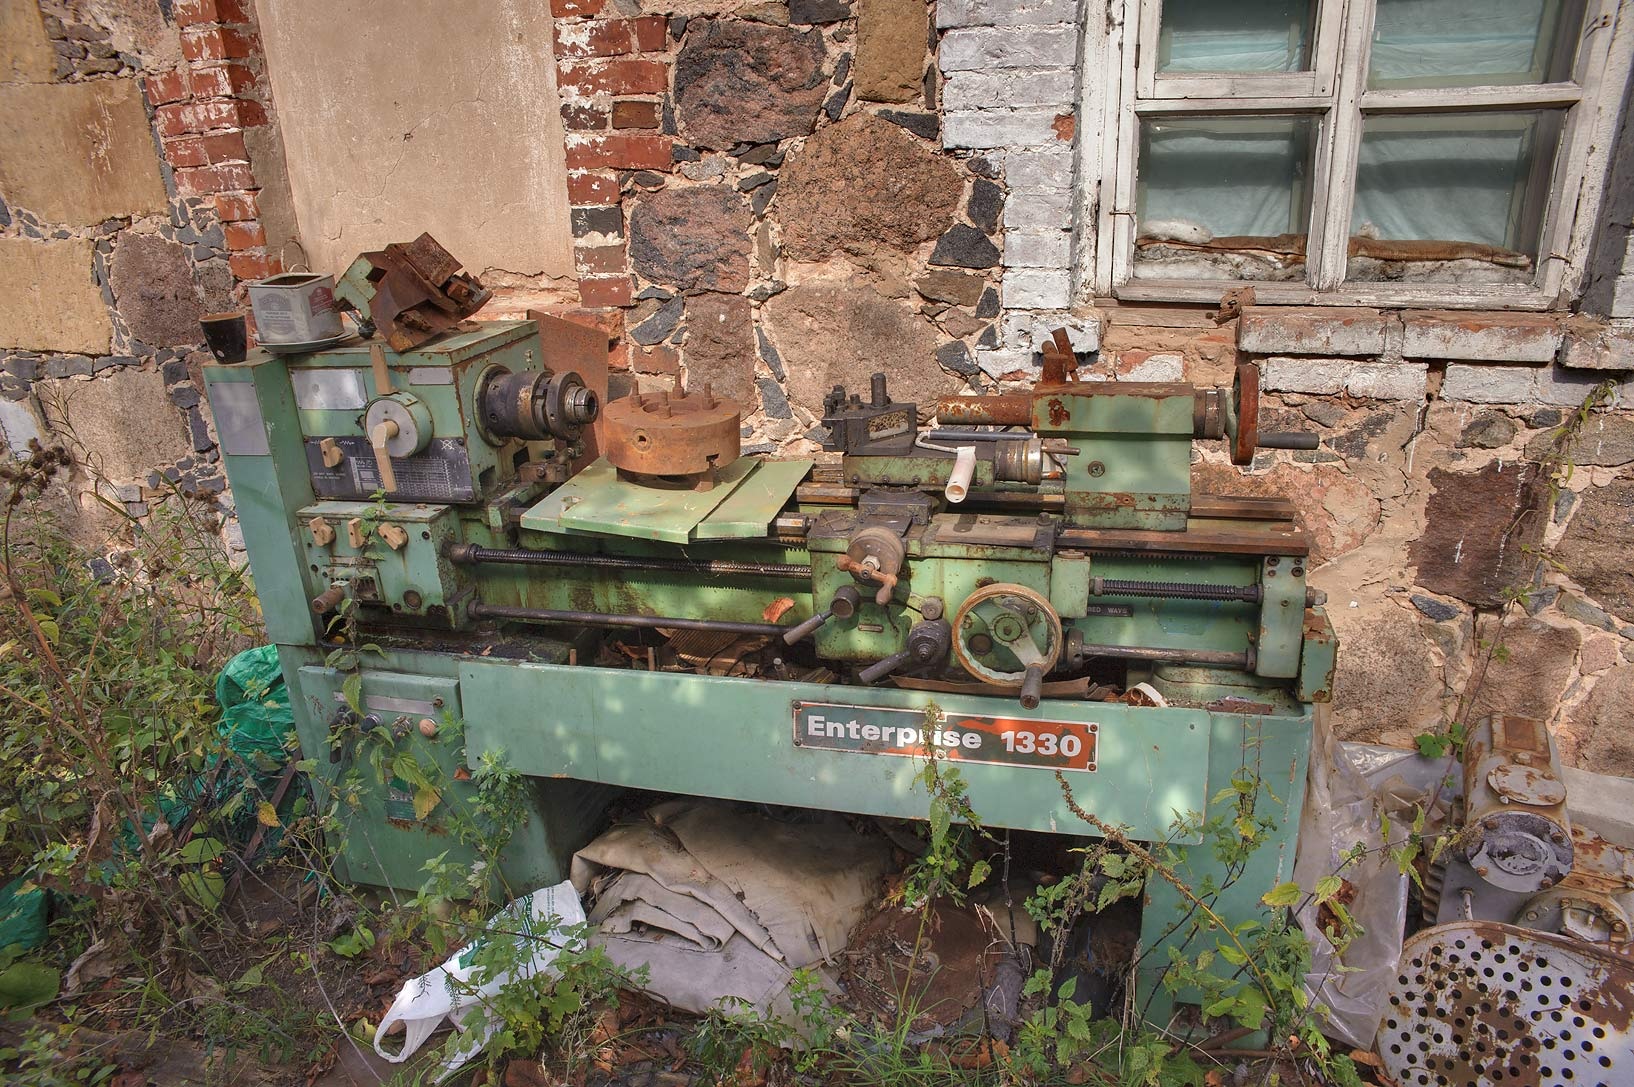 Old Metal Lathe Enterprise 1330 in John-Bogoslov...from Luga. Leningrad Region, Russia